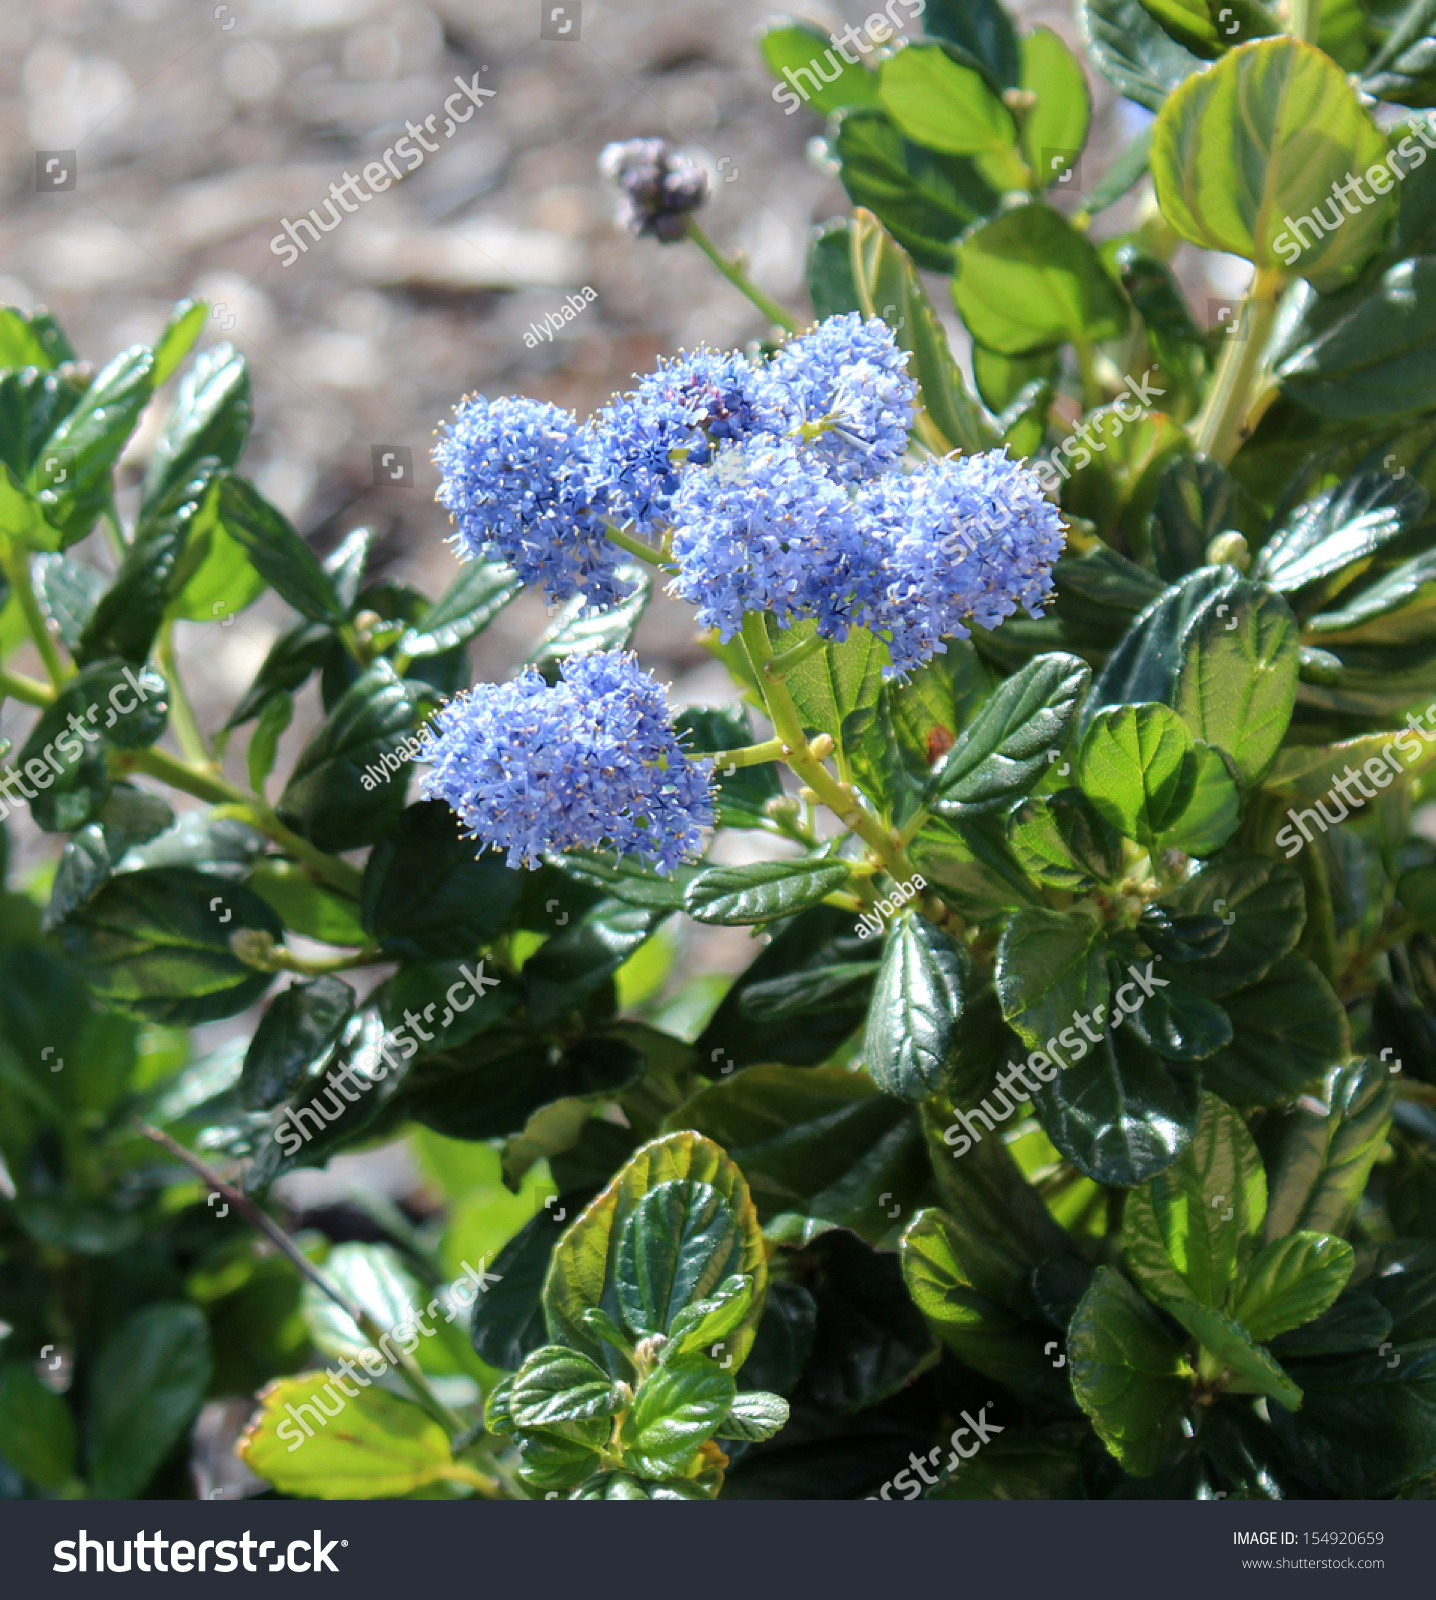 Fluffy tiny mid blue flower heads stock photo edit now 154920659 fluffy tiny mid blue flower heads of ceanothus thyrsifolia in glorious bloom in early spring is izmirmasajfo